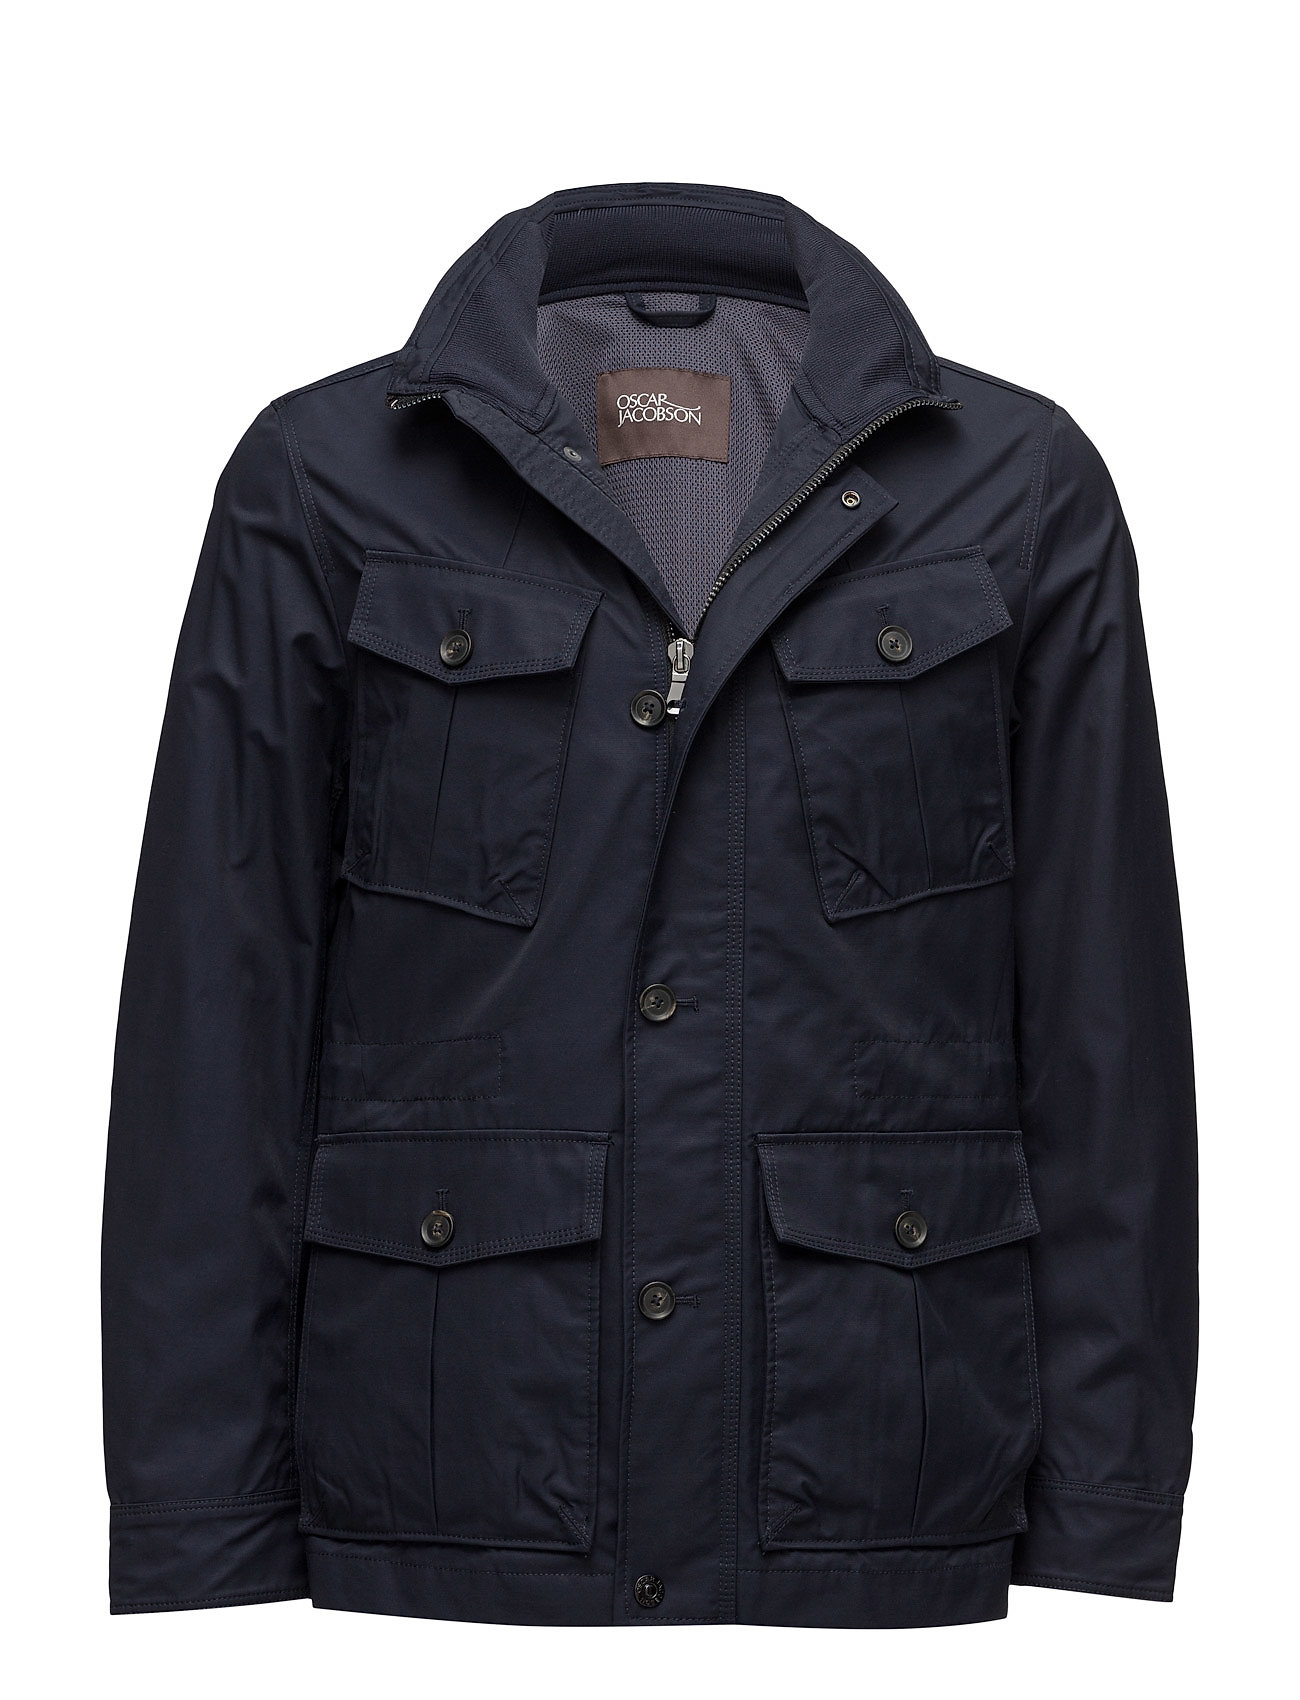 Image of Fielding Jacket (2937581955)